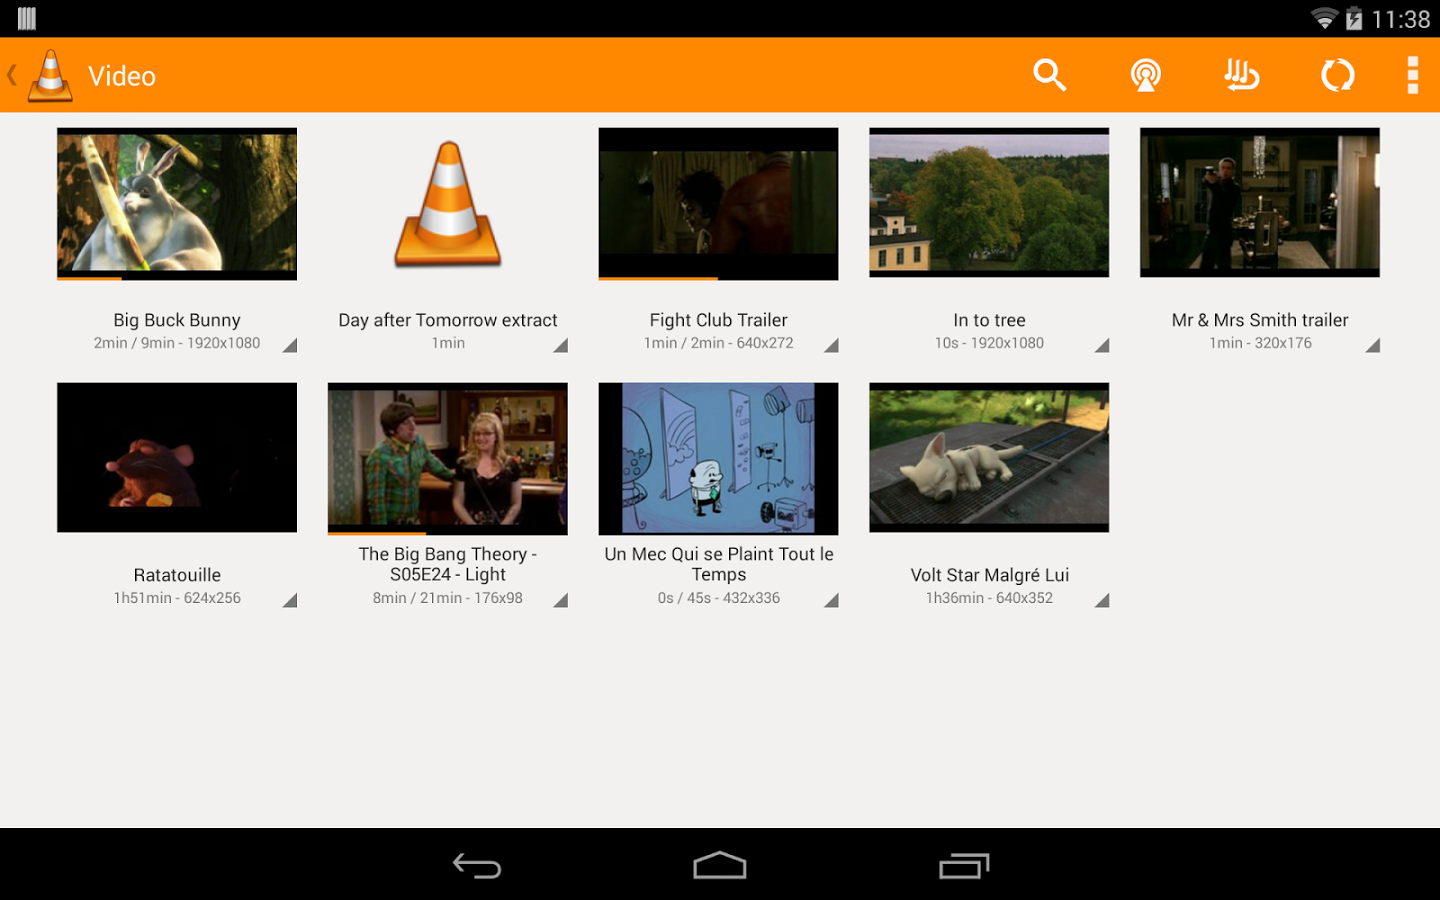 Vlc beta for windows 8 now available for download via windows.